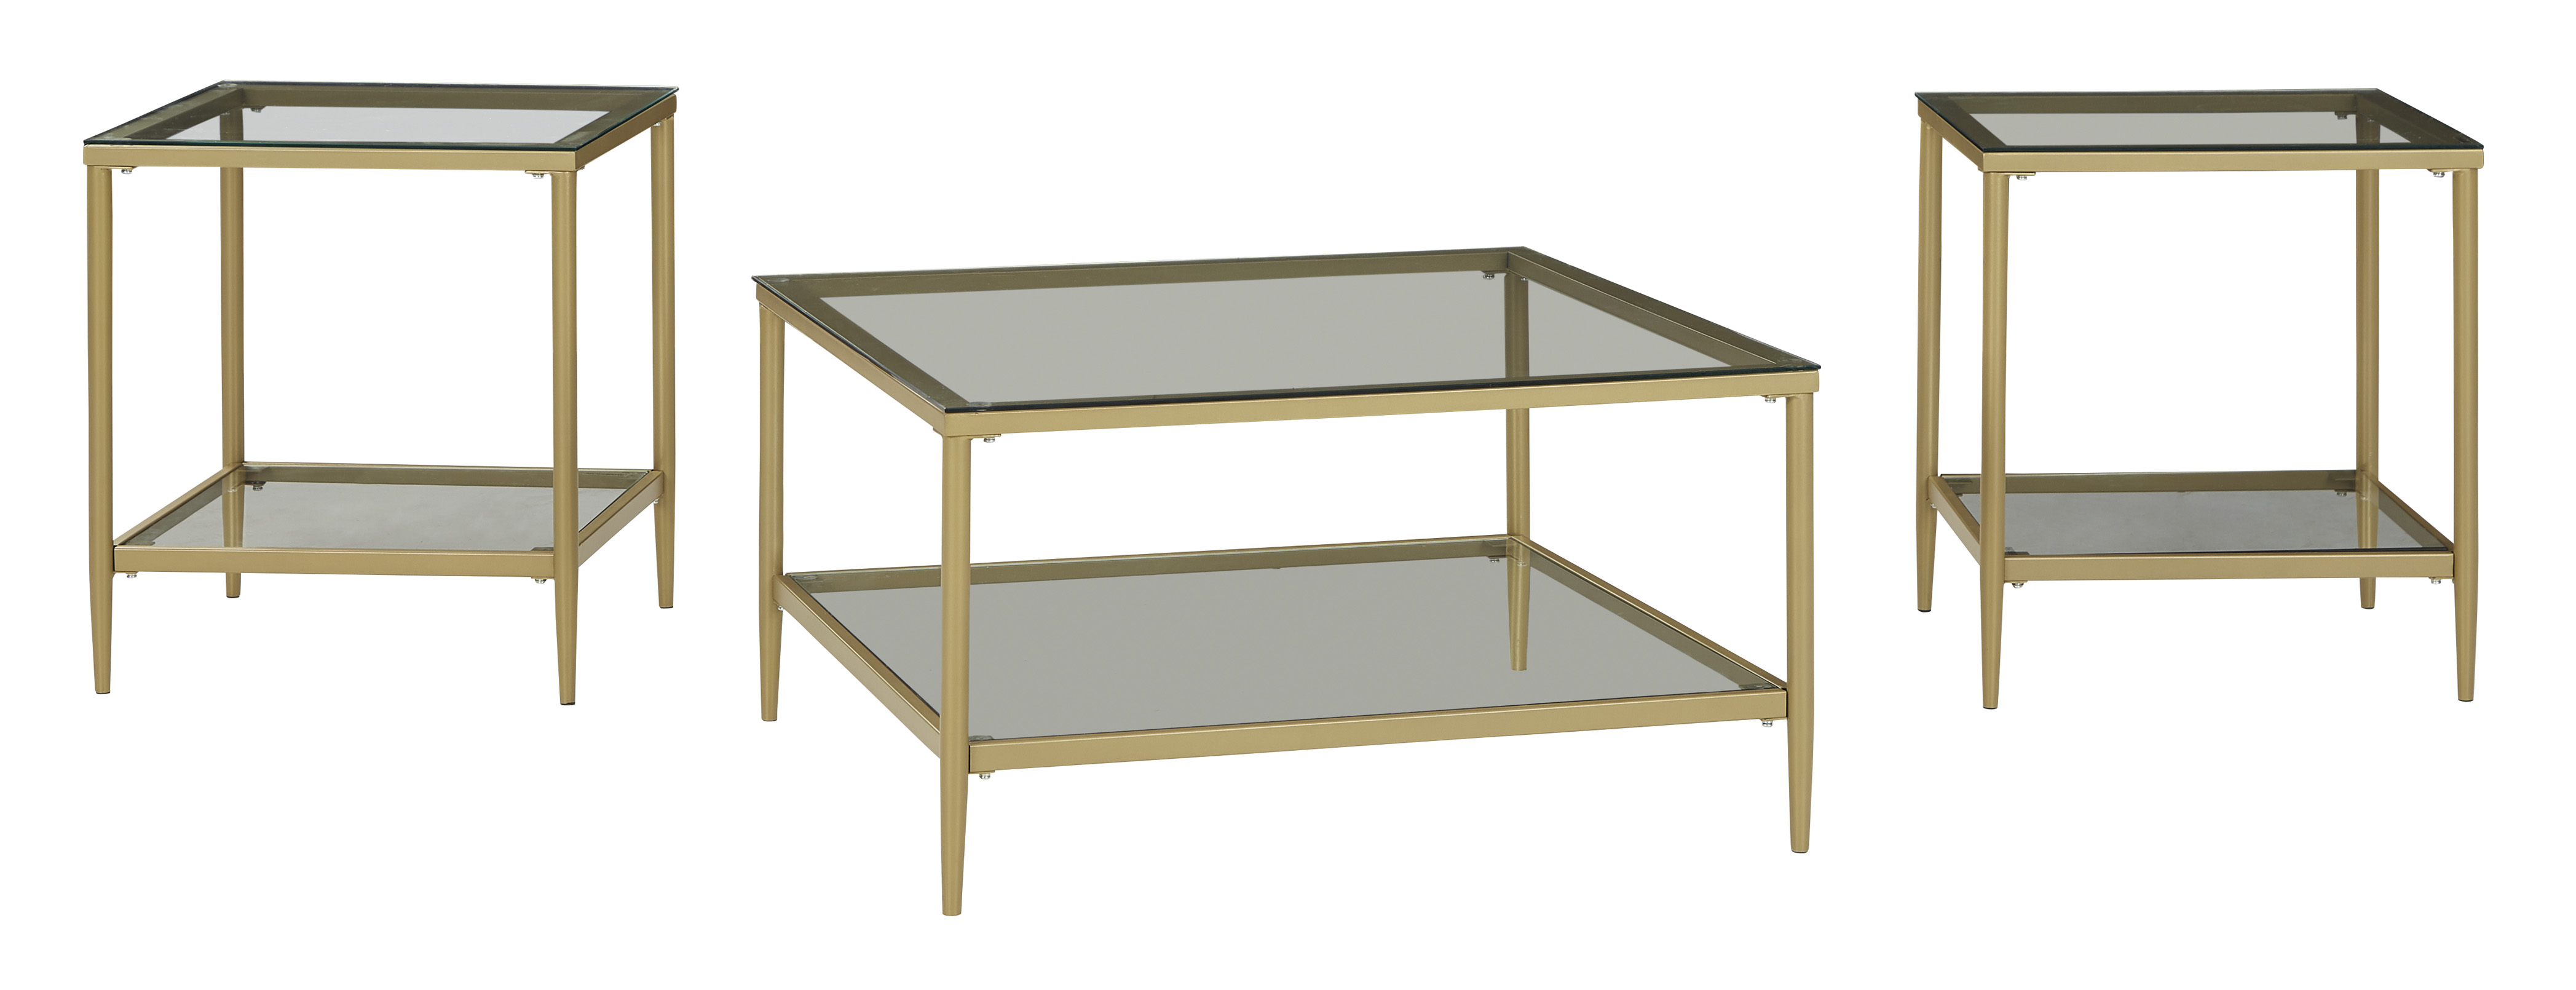 Zerika Occasional Table Set  by Signature Design by Ashley at Lynn's Furniture & Mattress